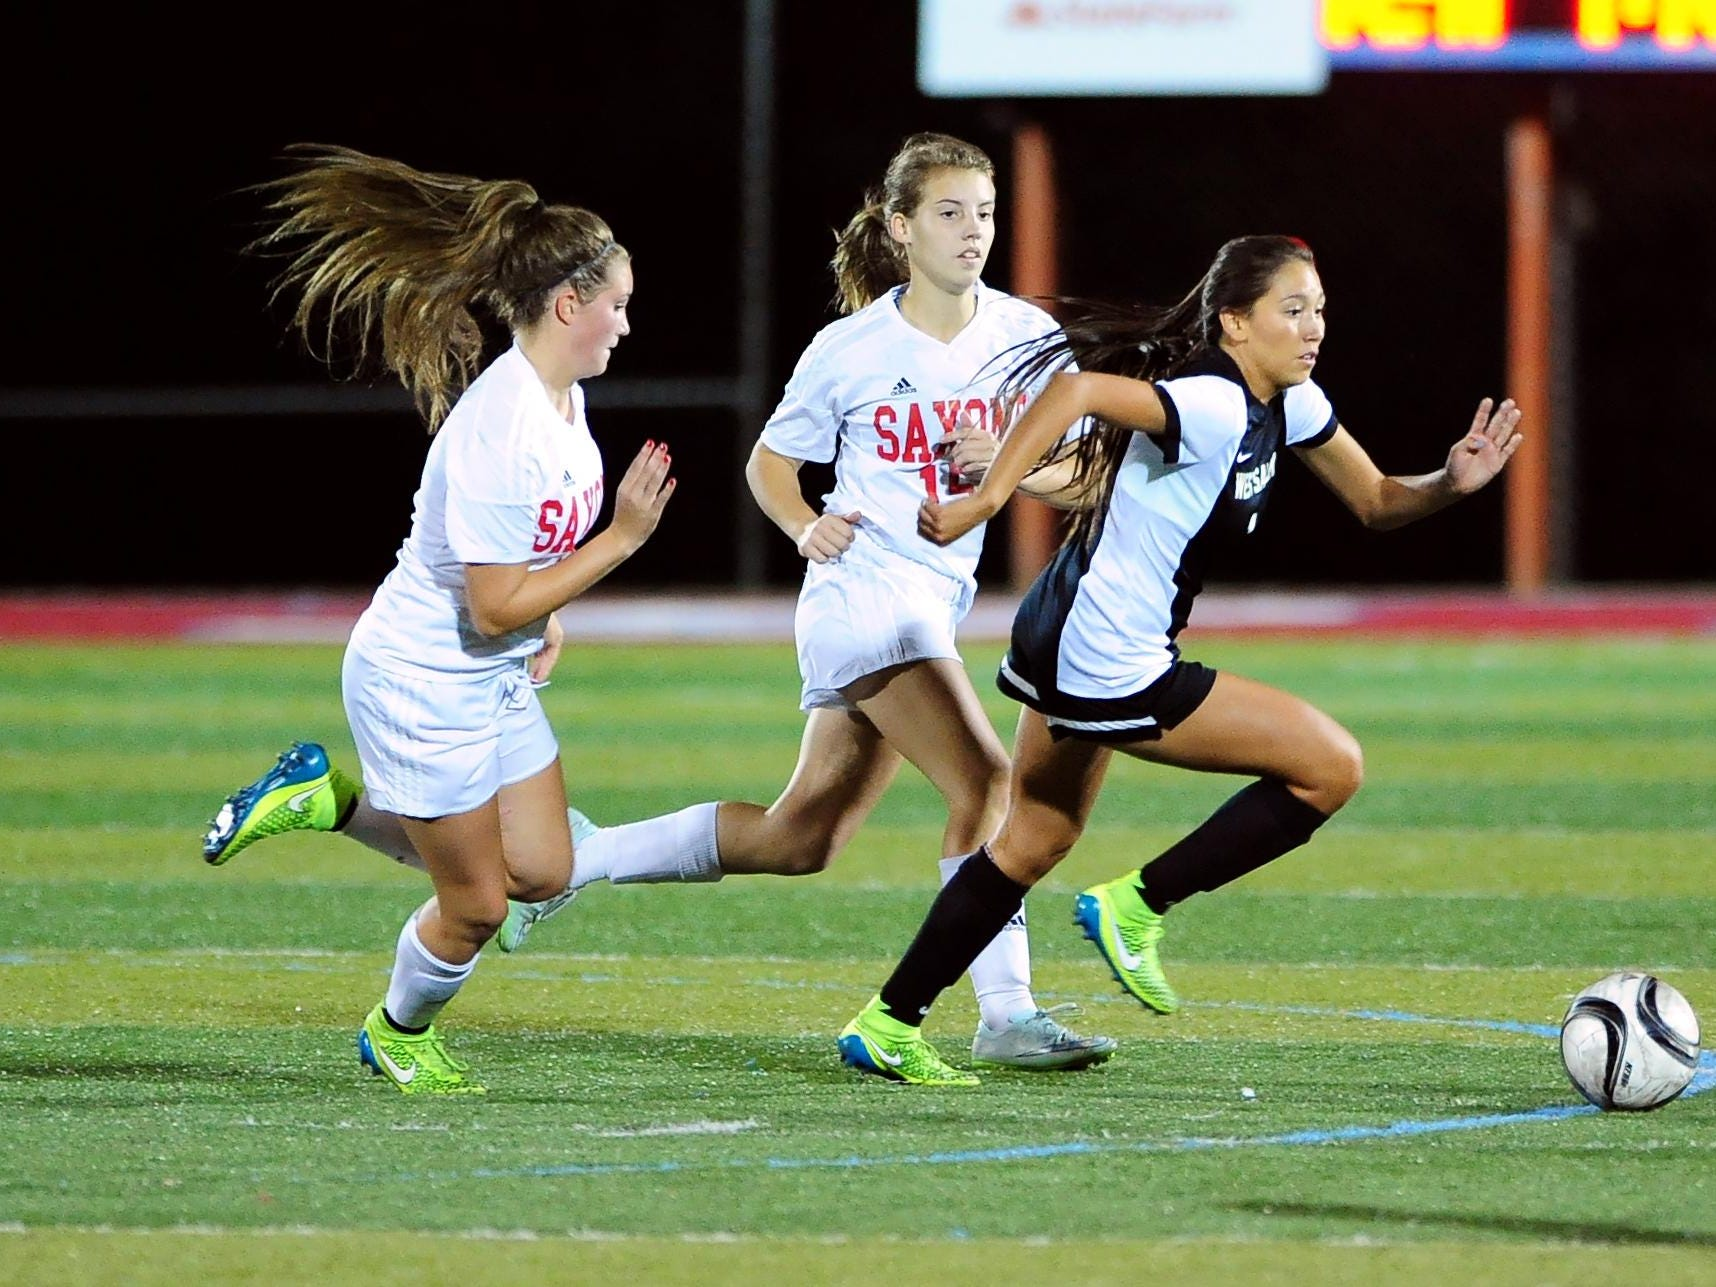 West Salem midfielder Liz Mendez (1) controls the ball against South Salem during a Greater Valley Conference game, Wednesday, Oct. 6, 2015, in Salem, Ore.